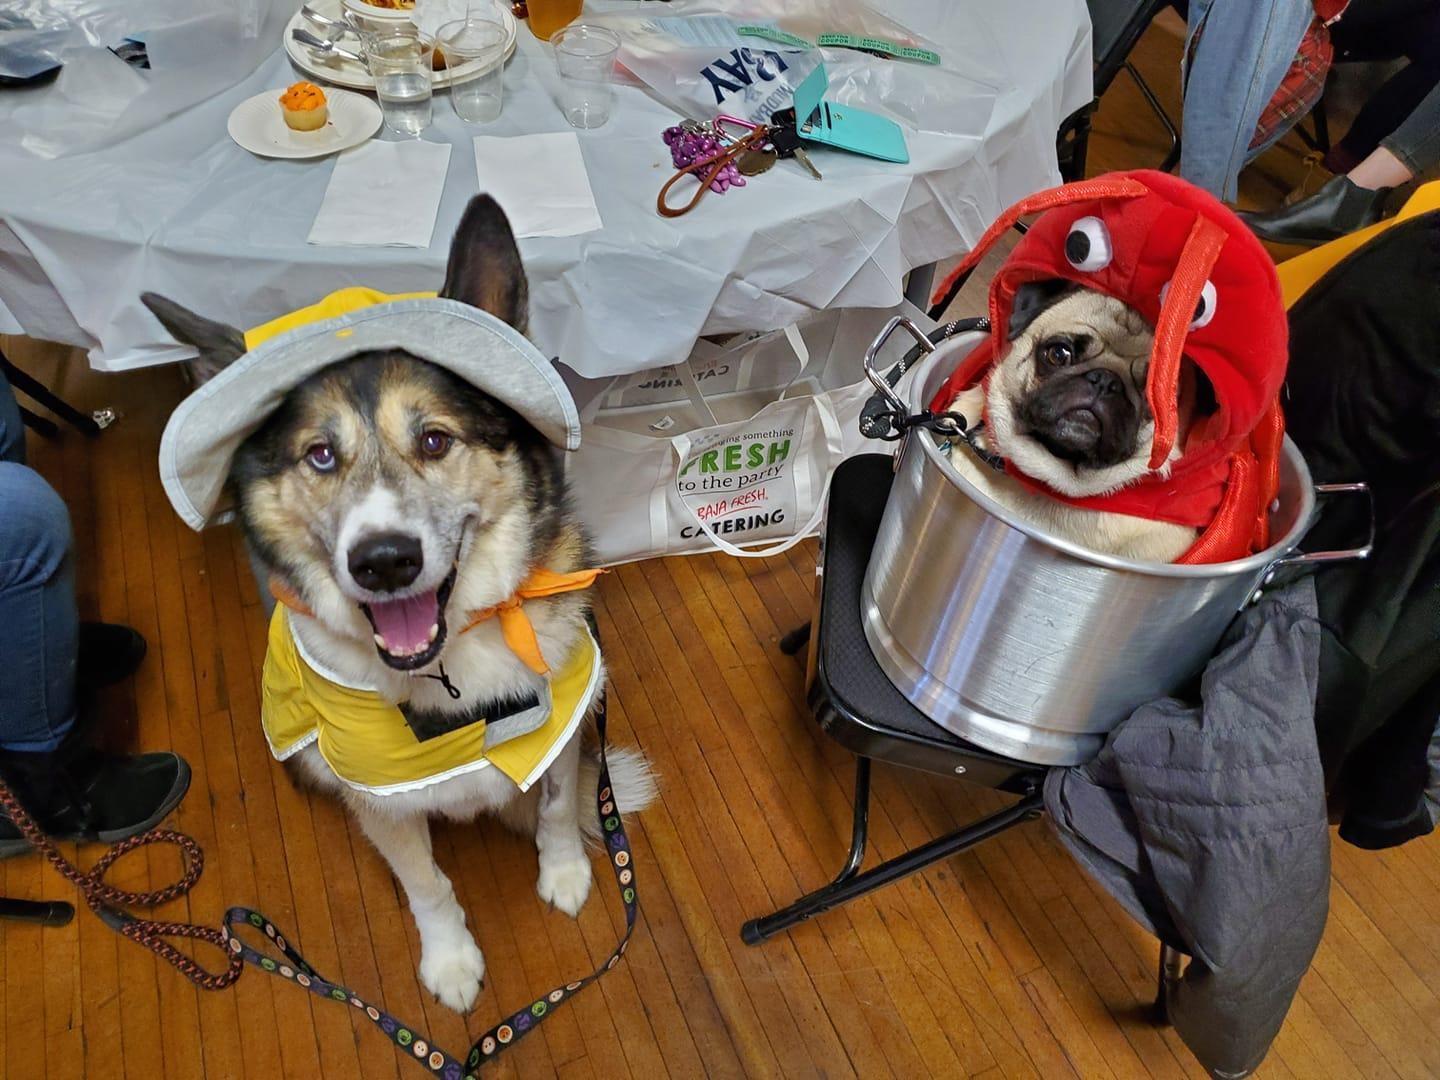 Two Dogs Dressed in Halloween Costumes as a Lobster and a Fisherman.